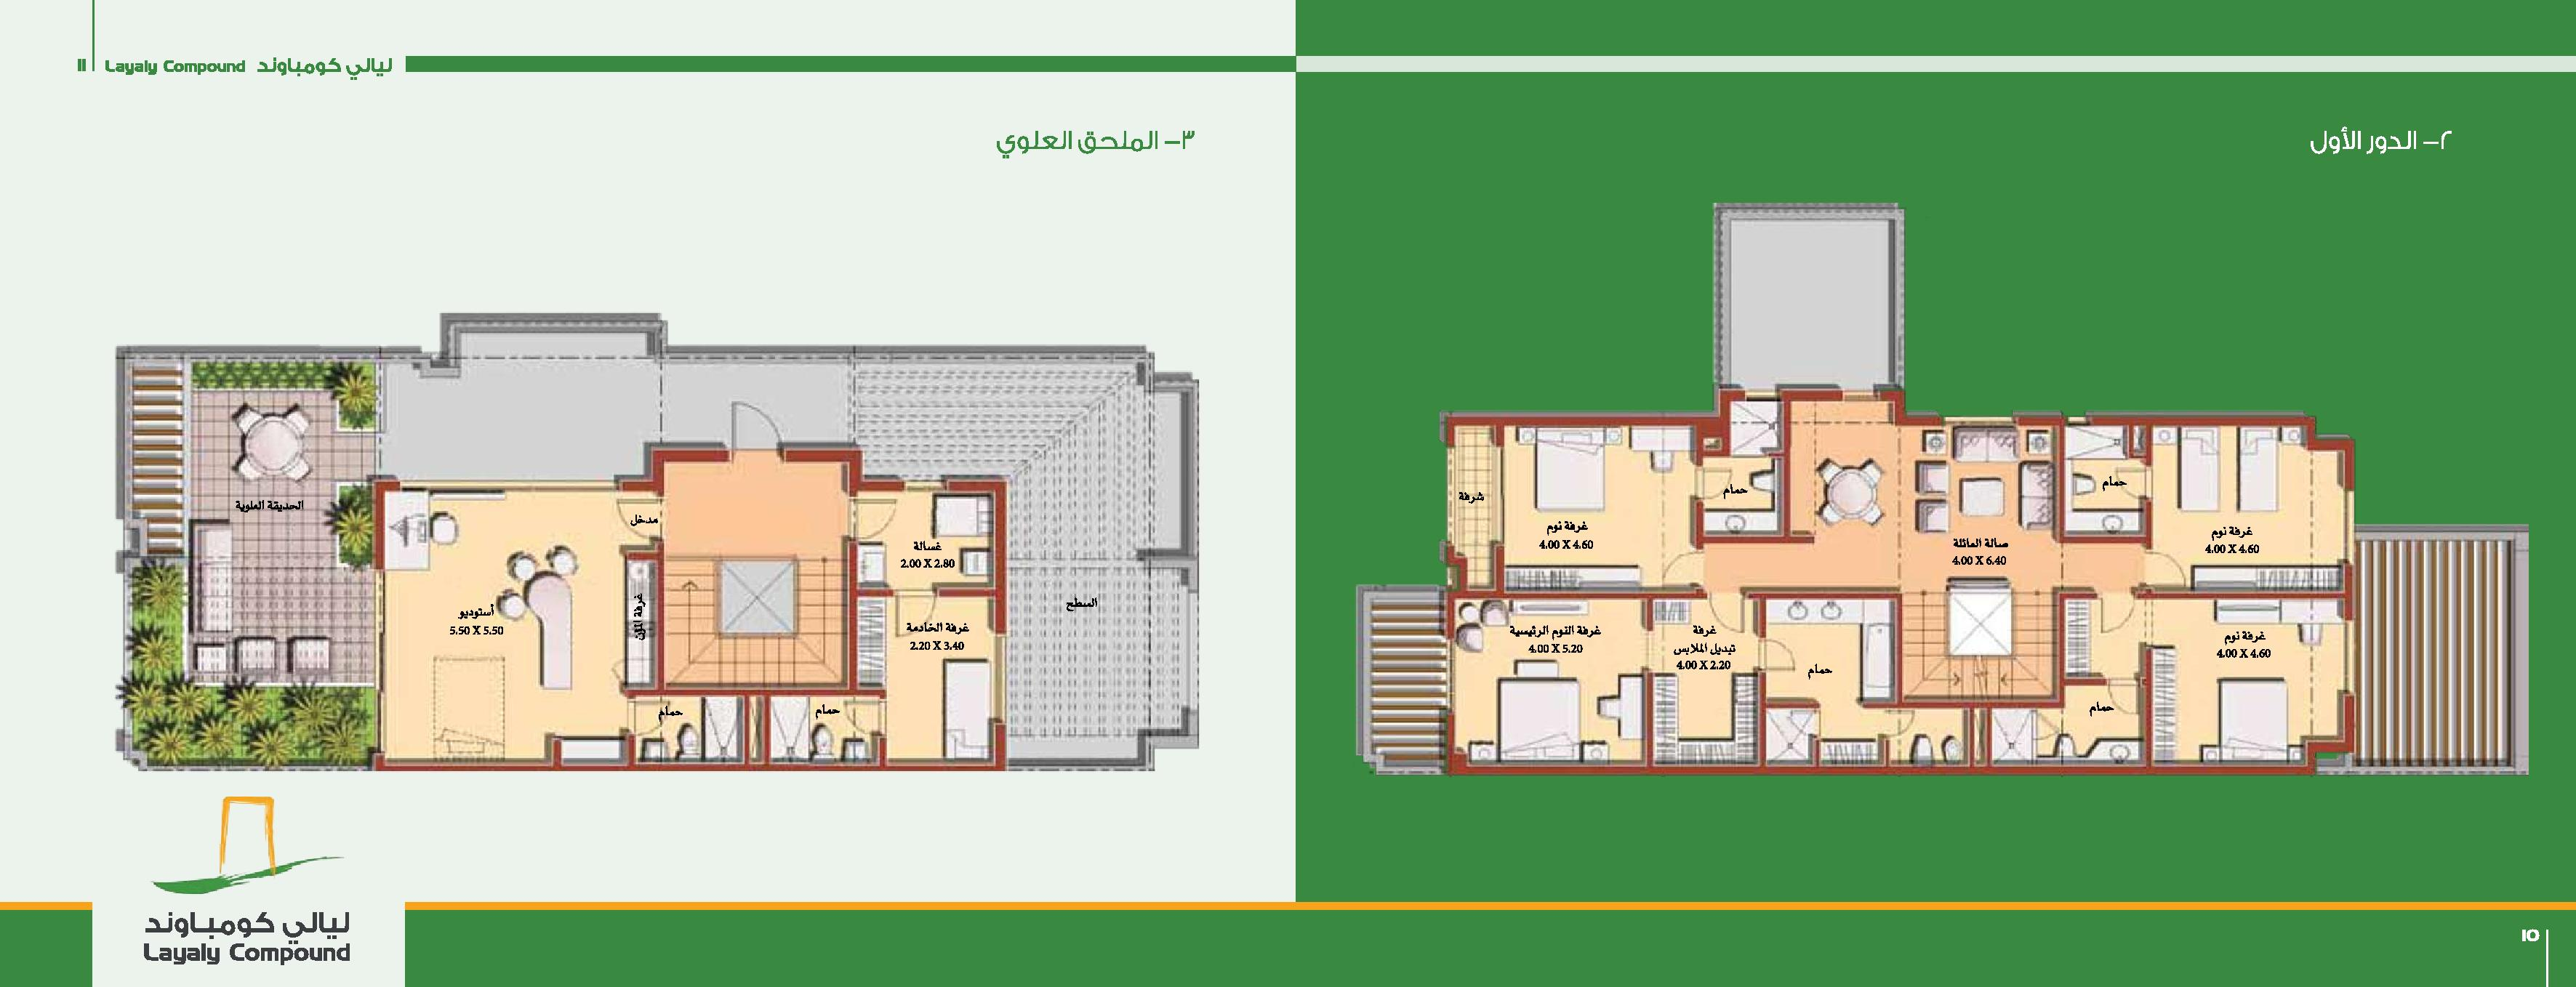 100 family compound floor plans 25 woodgate ct for Compound home designs